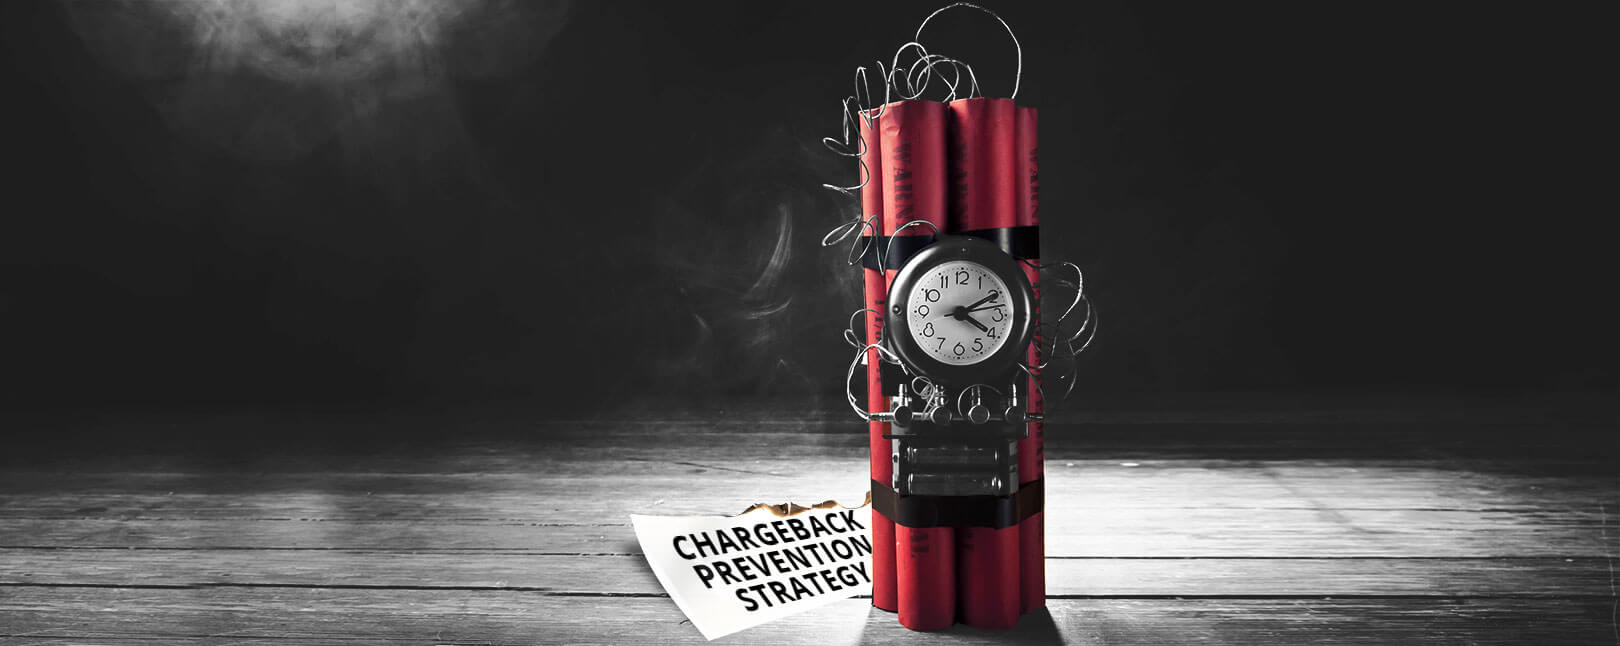 Chargebacks can a ticking timebomb. Here's how to fix it. If you are looking for ways to avoid chargebacks and the MATCH list these ideas are easy to implement. Schedule your appointment with a Payment Professional for a free analysis, we know we can help!